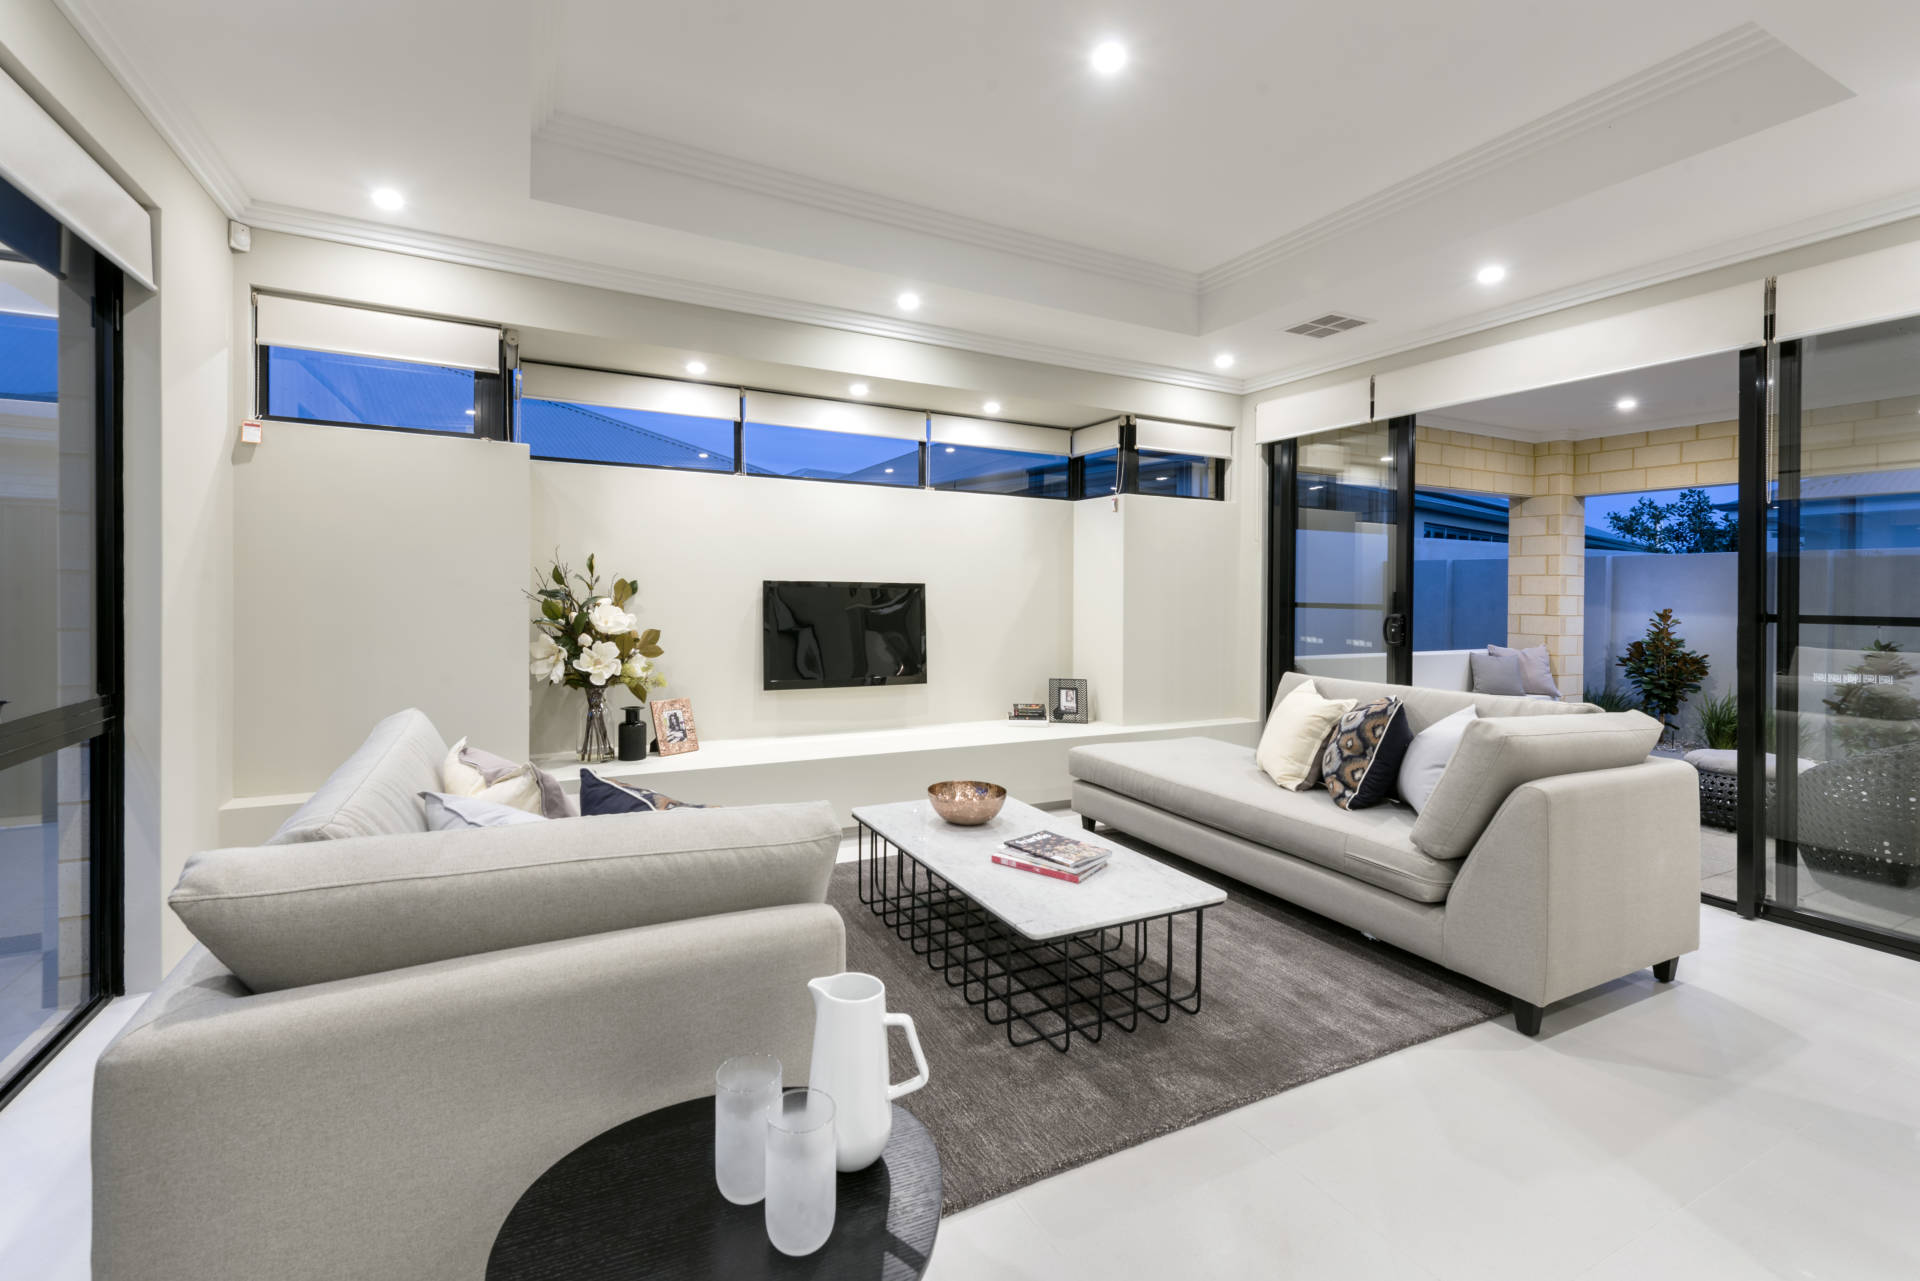 Modern spacious living room with light grey and egg shell decor leading into a patio through large sliding doors